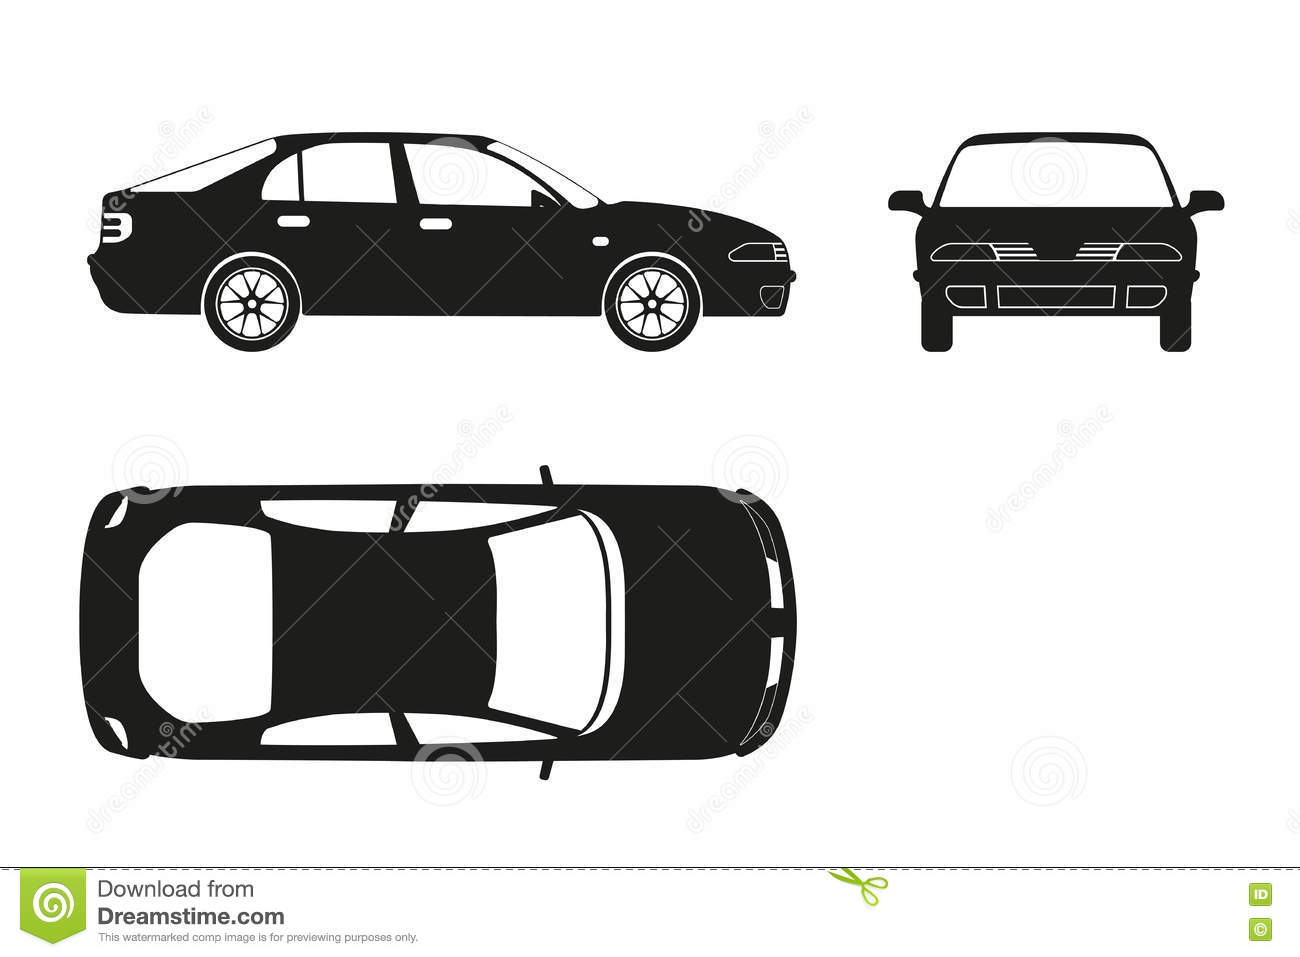 car silhouette on a white background three views front side stock vector illustration of. Black Bedroom Furniture Sets. Home Design Ideas